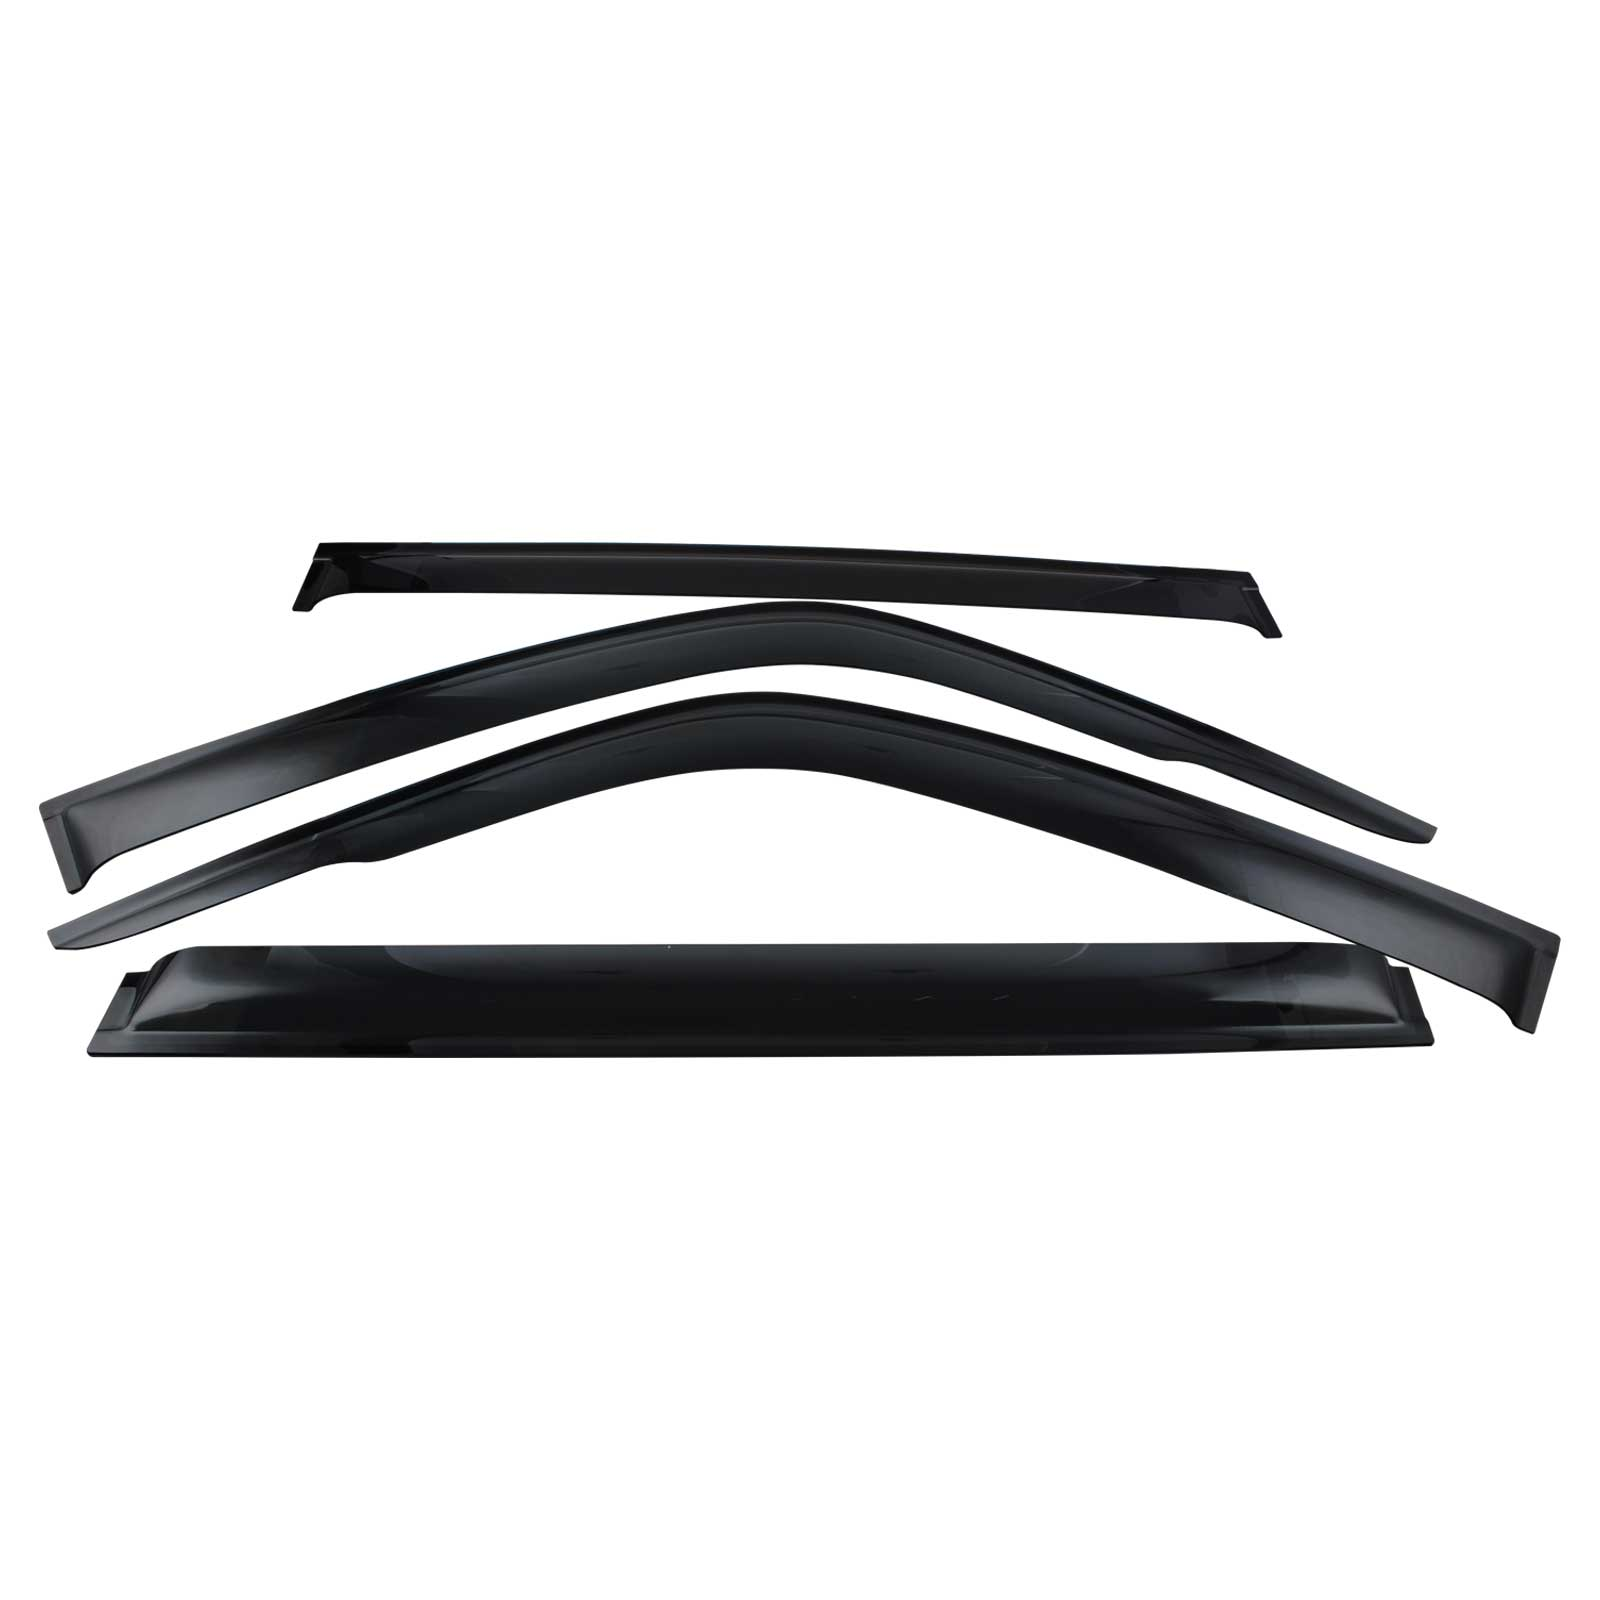 Premium Weathershield Weather Shield Window Visor Fit For Patrol GU Y61 97-18 4pcs image